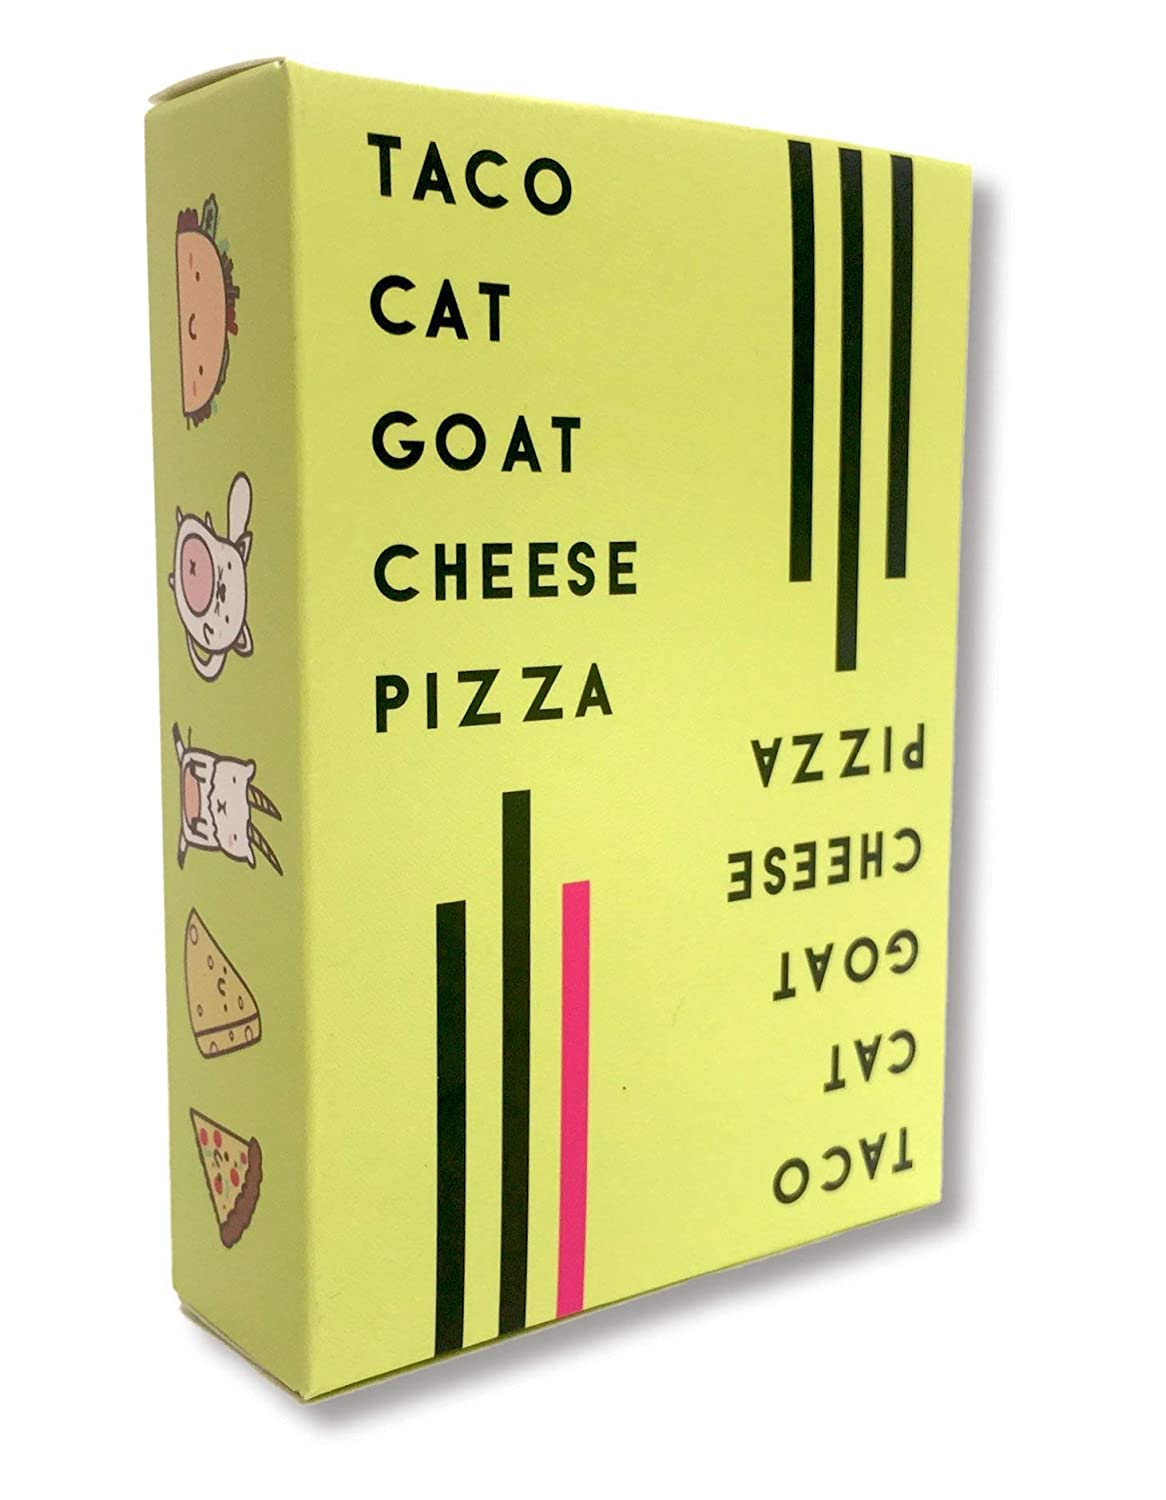 Taco Cat Goat Cheese Pizza by Dolphin Hat Games